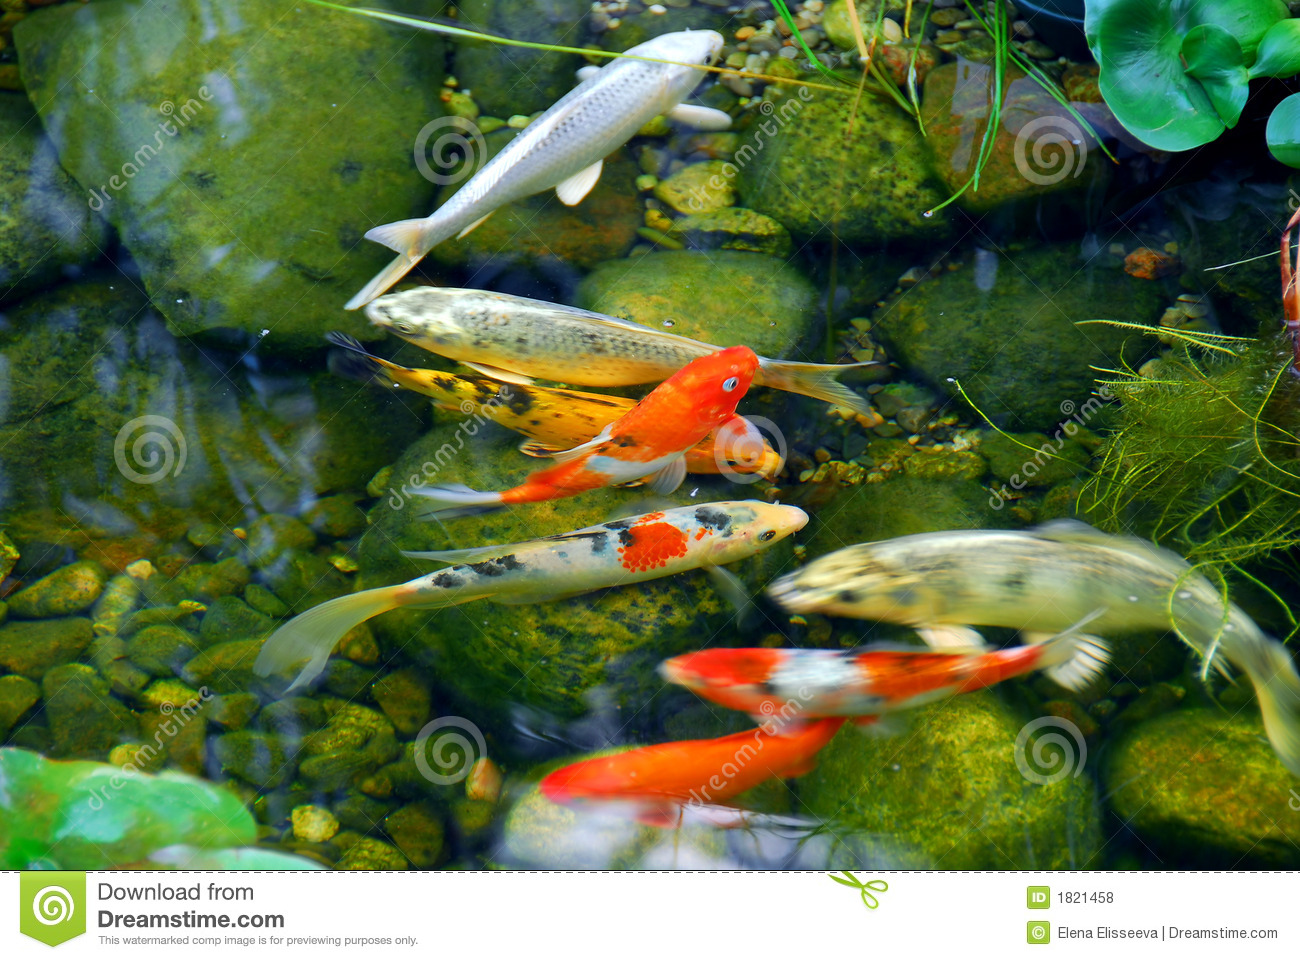 Koi royalty free stock photos image 1821458 for Freshwater koi fish